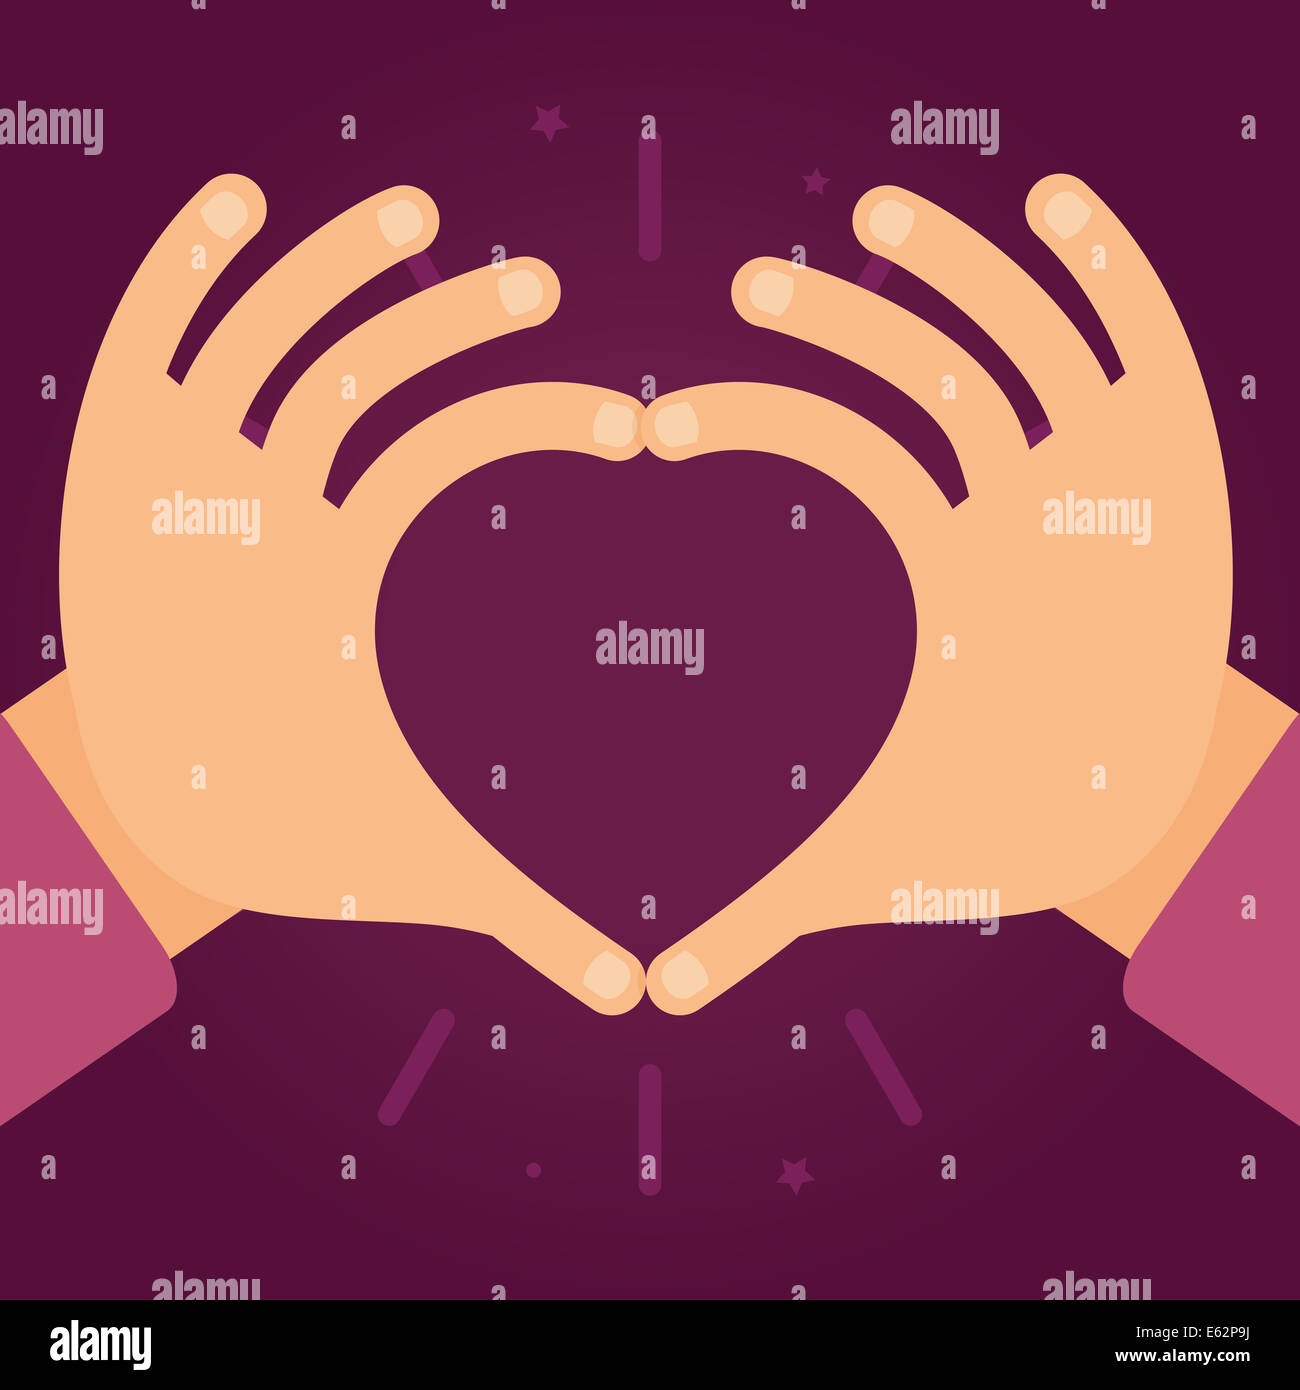 Hands in the form of heart - love and charity concept in flat style - Stock Image